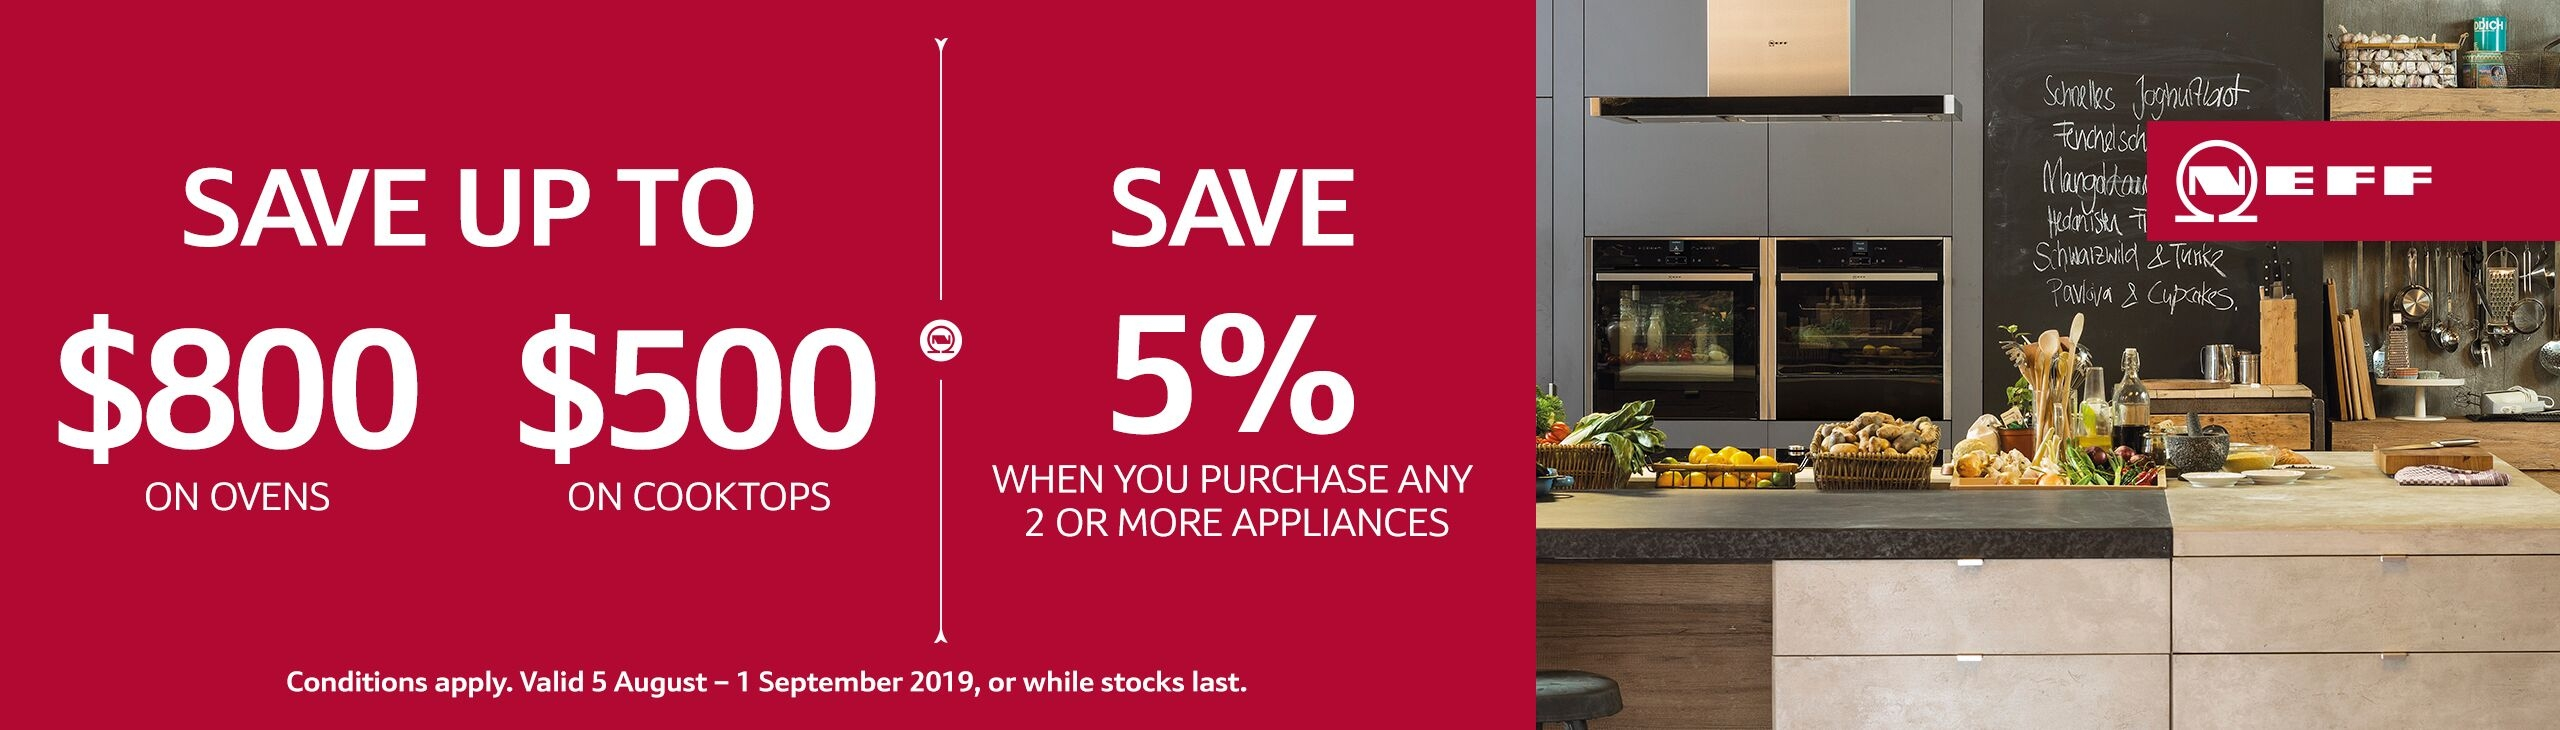 Neff August 2019 Promotions